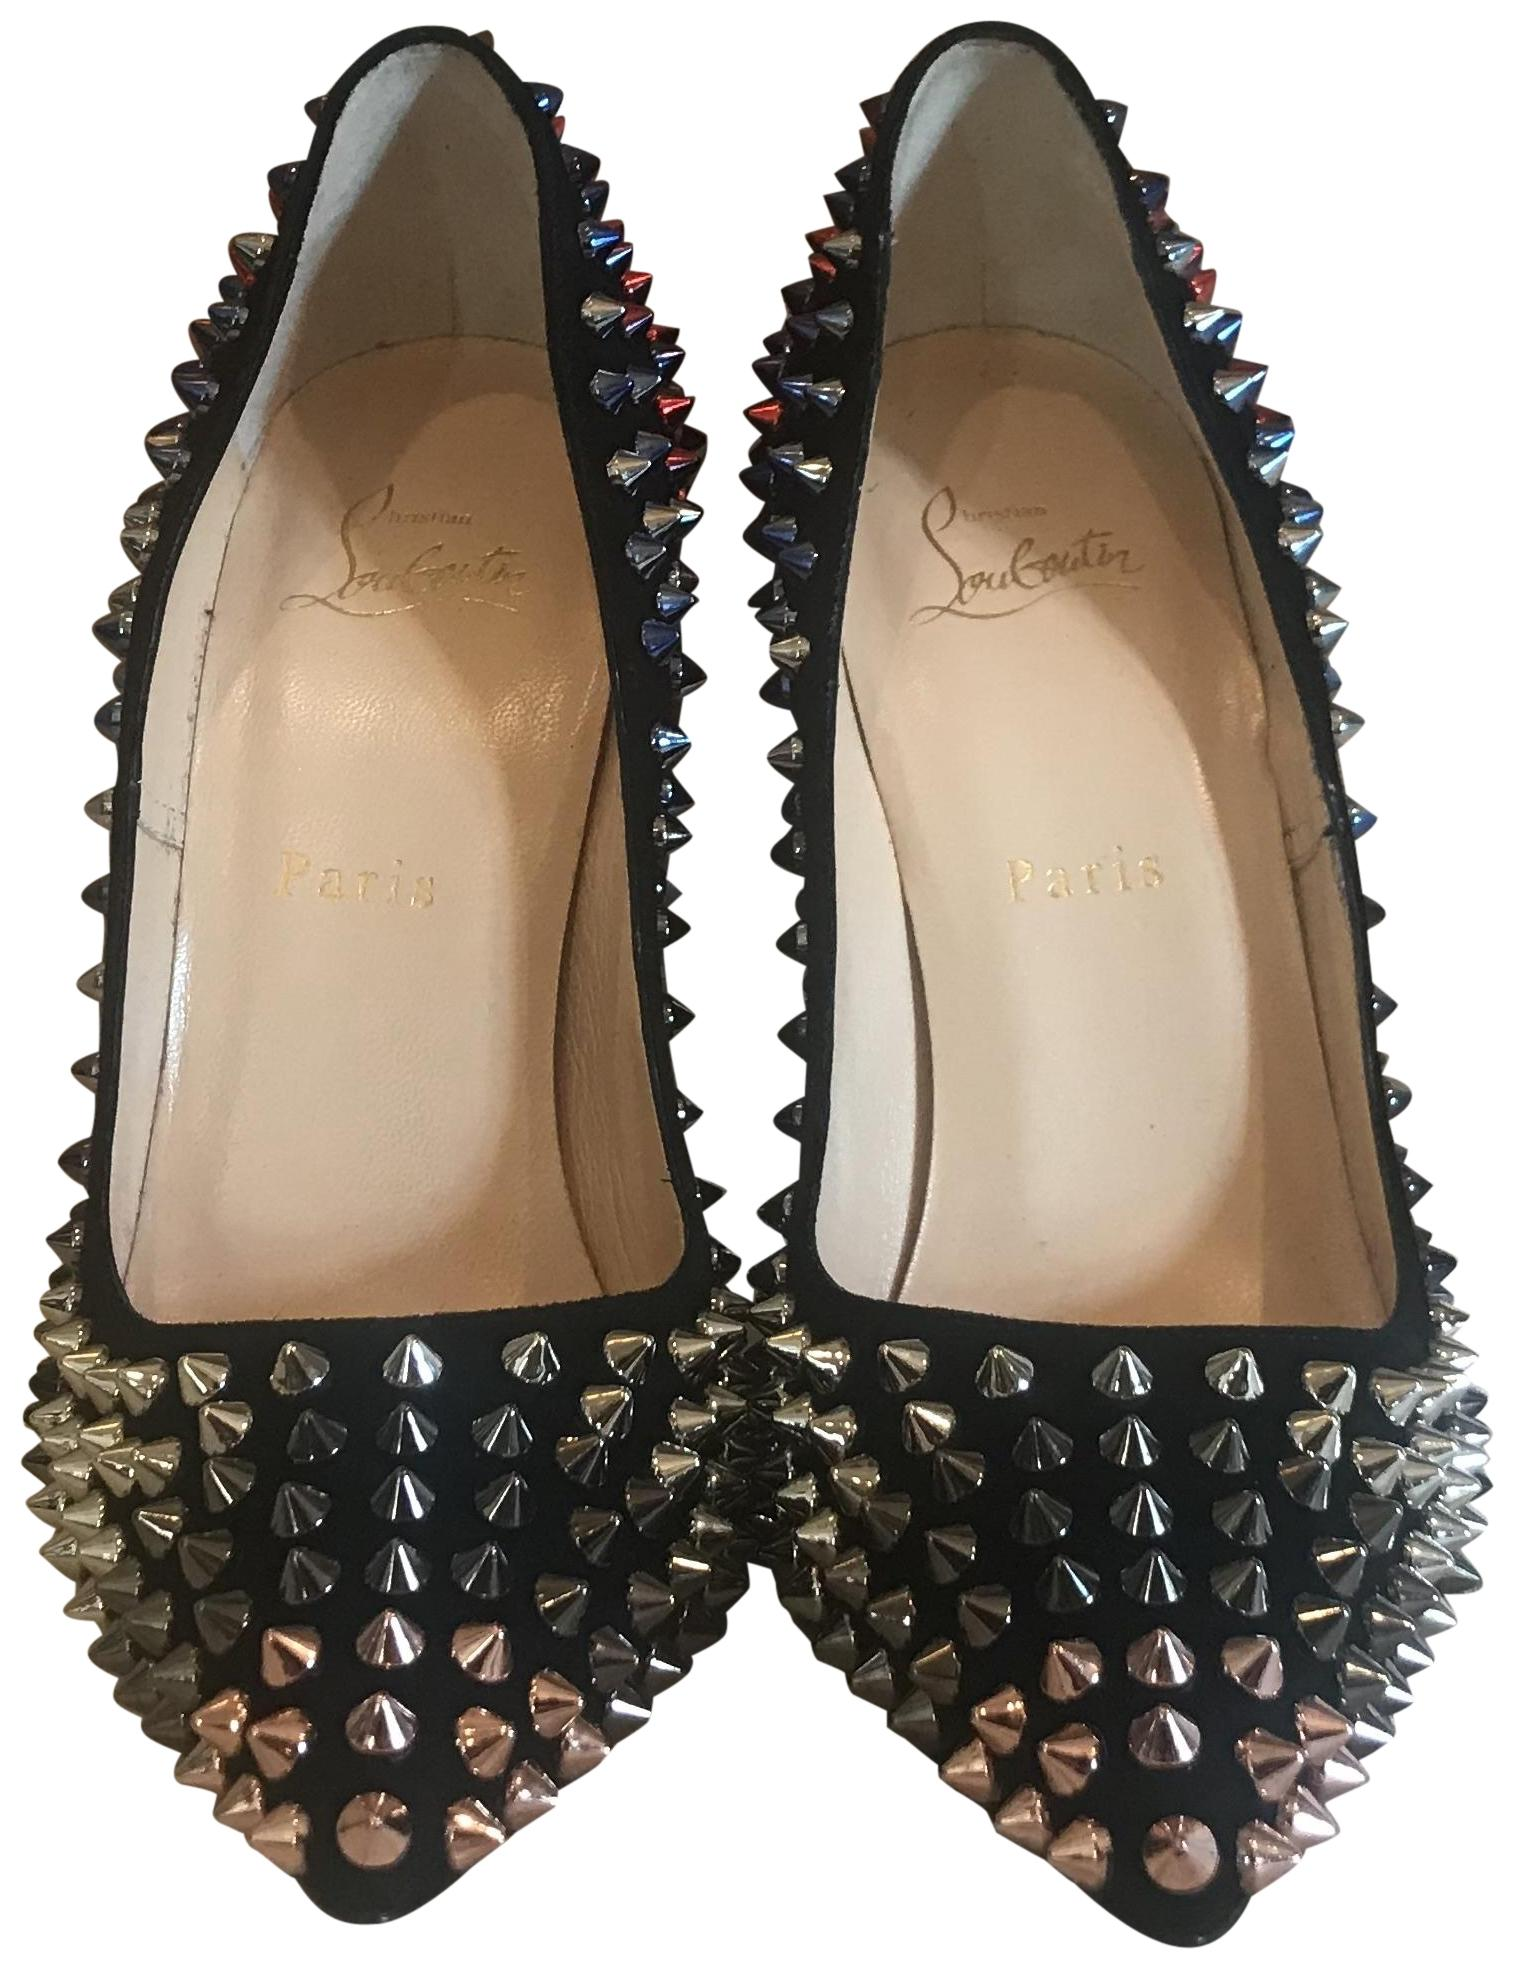 0413d7606650 ebay shoe envy christian louboutin 2013 spring roller boat flat white 5596d  6a67c  where to buy christian louboutin so kate suede spikes stiletto  scarabee ...